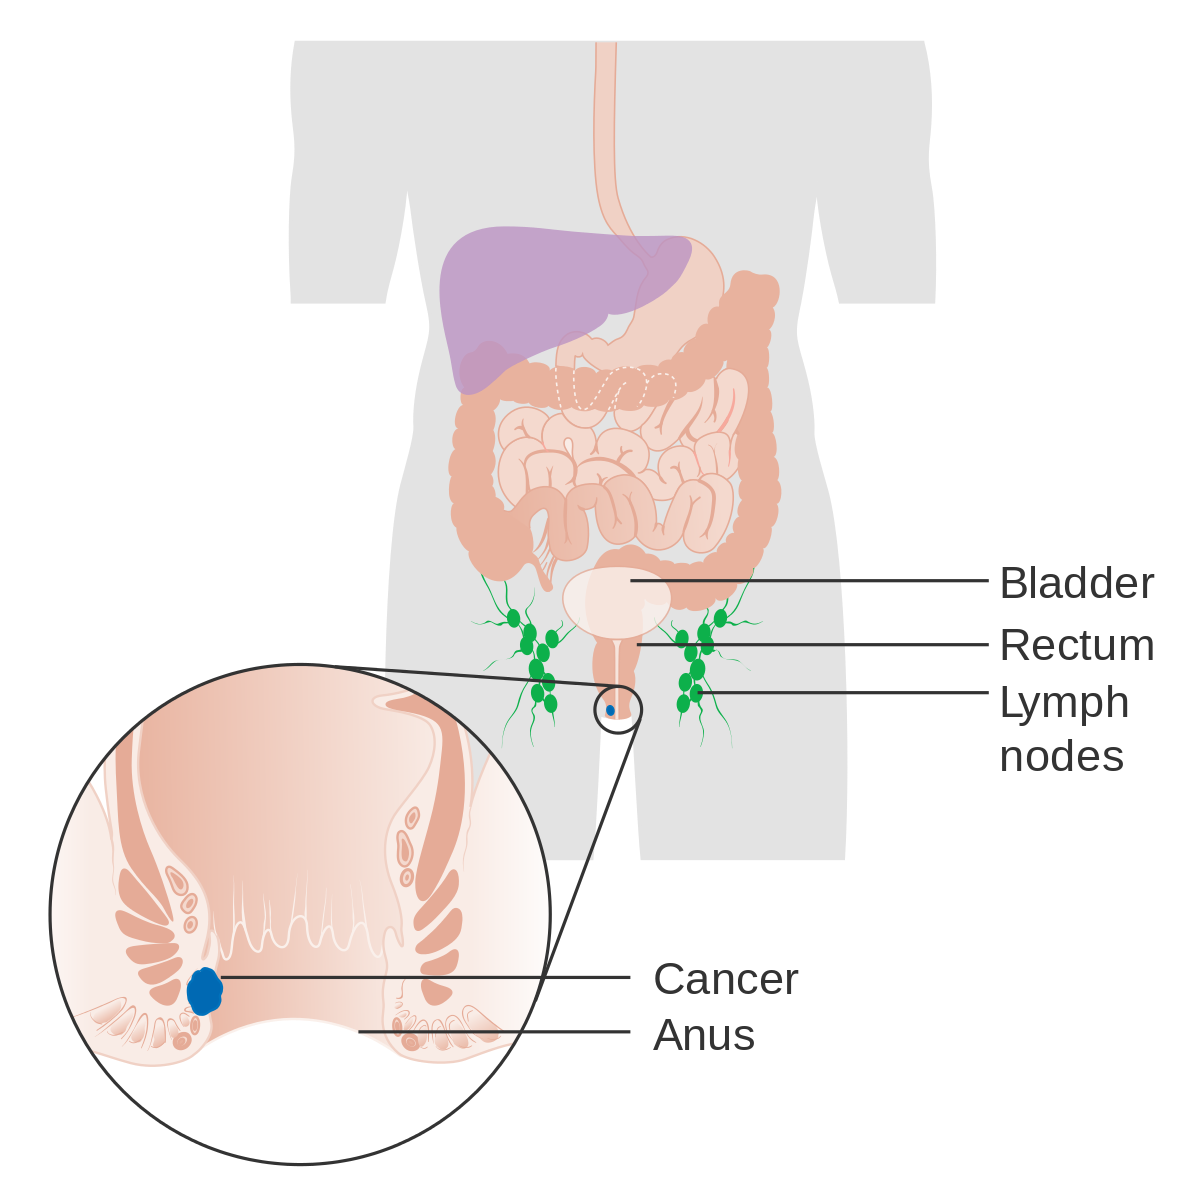 Hpv virus and swollen lymph nodes.